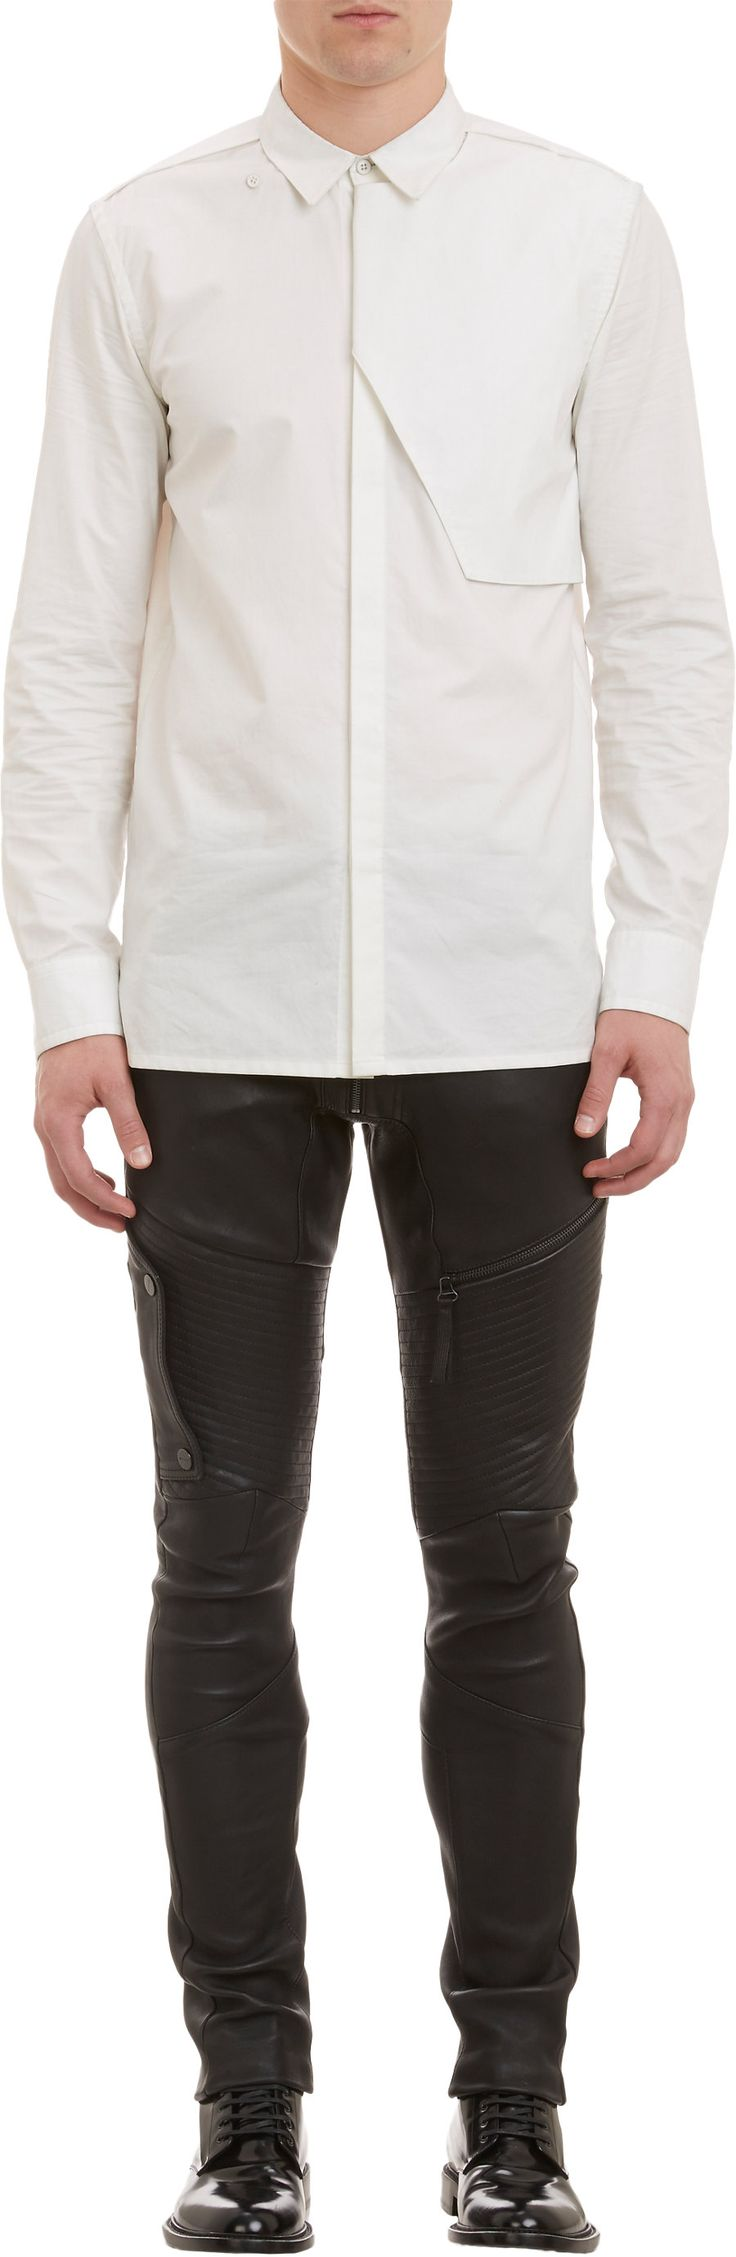 Helmut Lang Storm Flap Shirt at Barneys.com